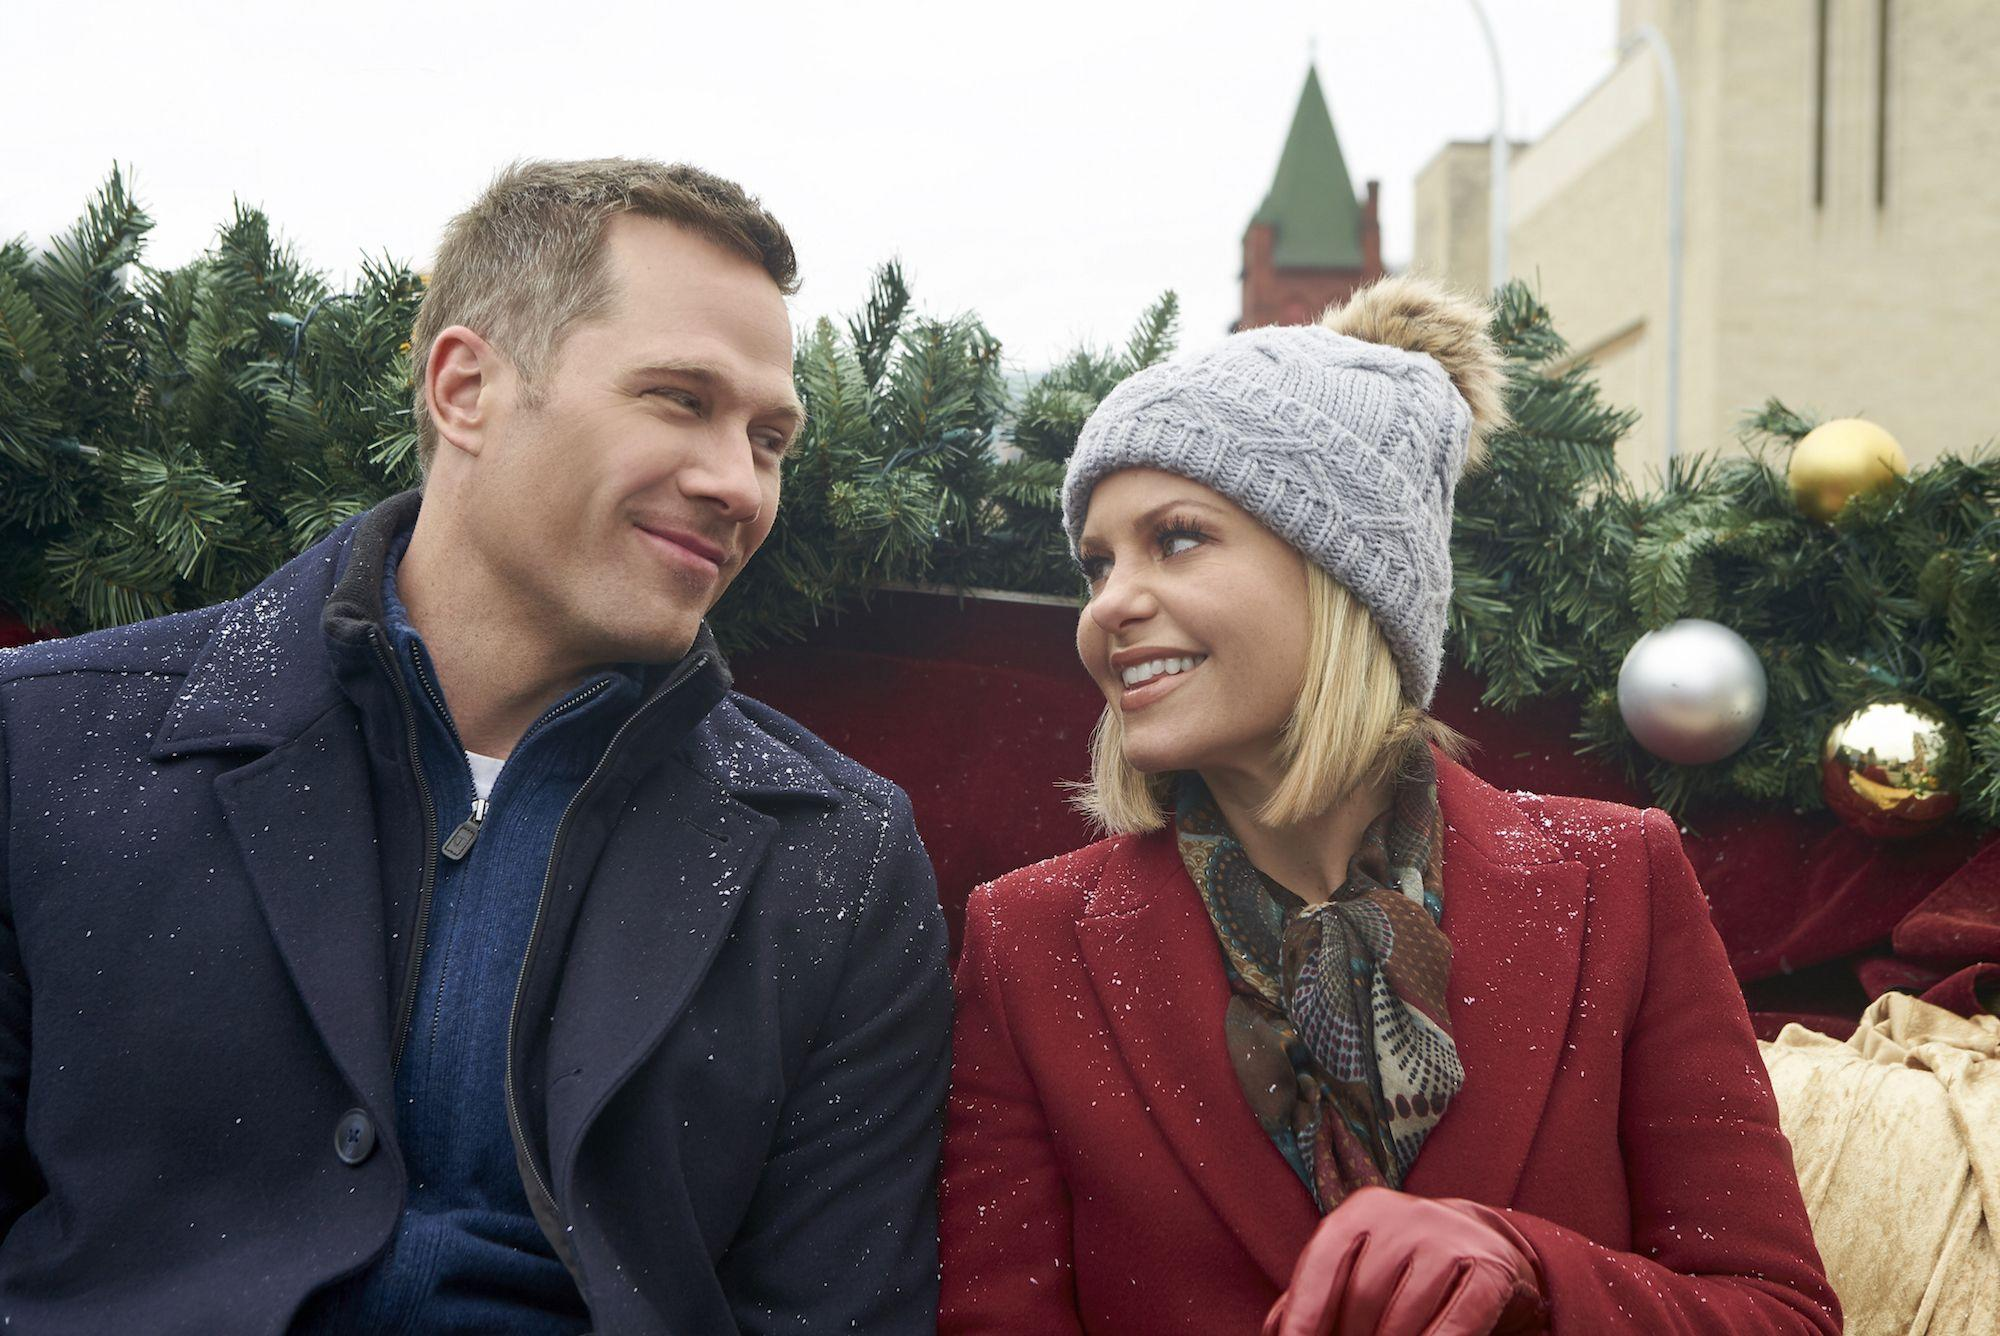 Christmas At Graceland Hallmark.Hallmark Is Airing A Brand New Christmas At Graceland